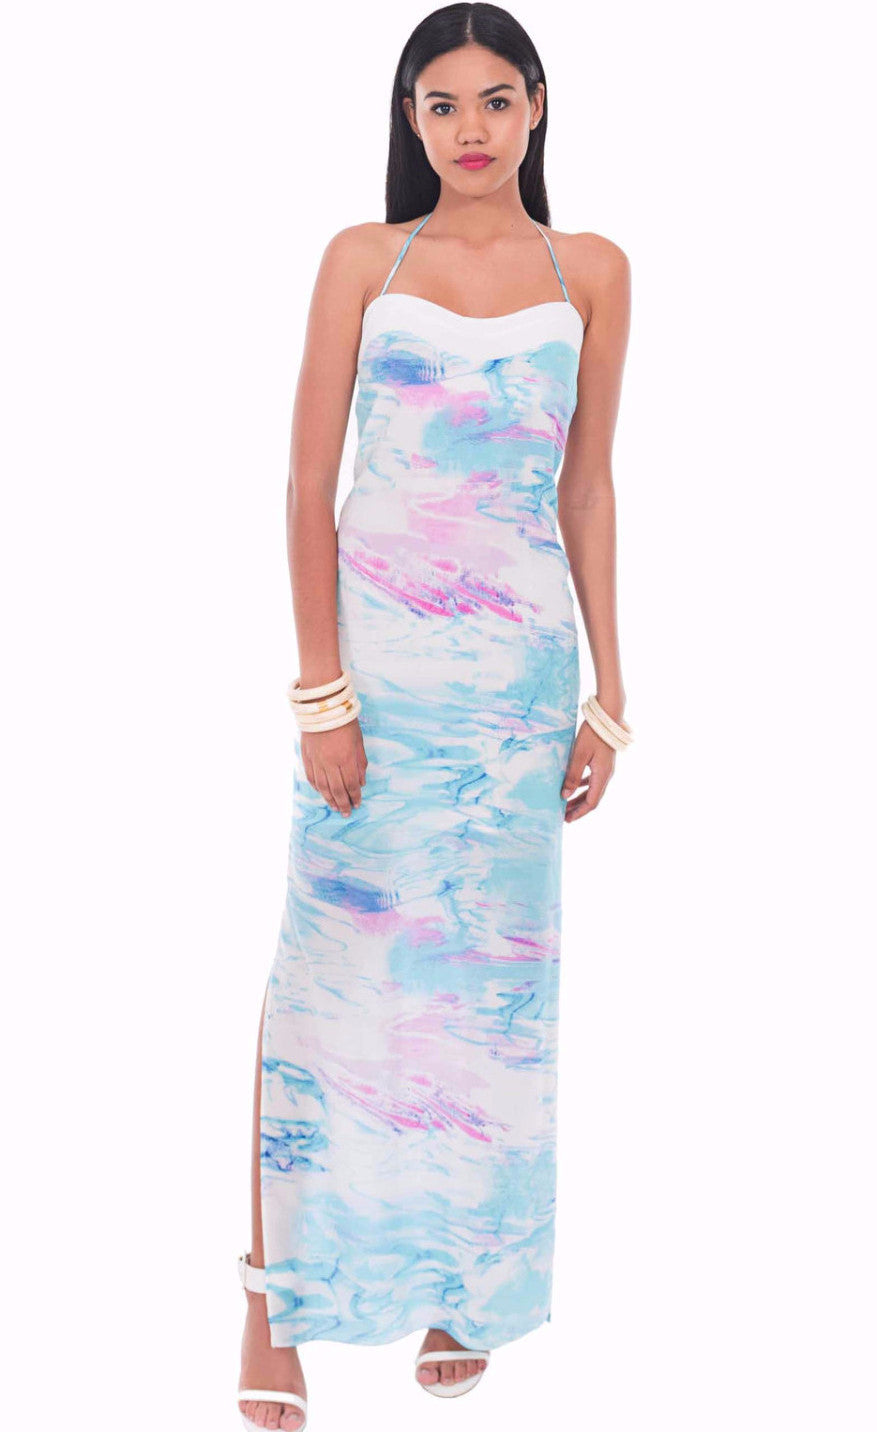 Cayman Wave Maxi Dress by Isy B. Design - Front View on Model